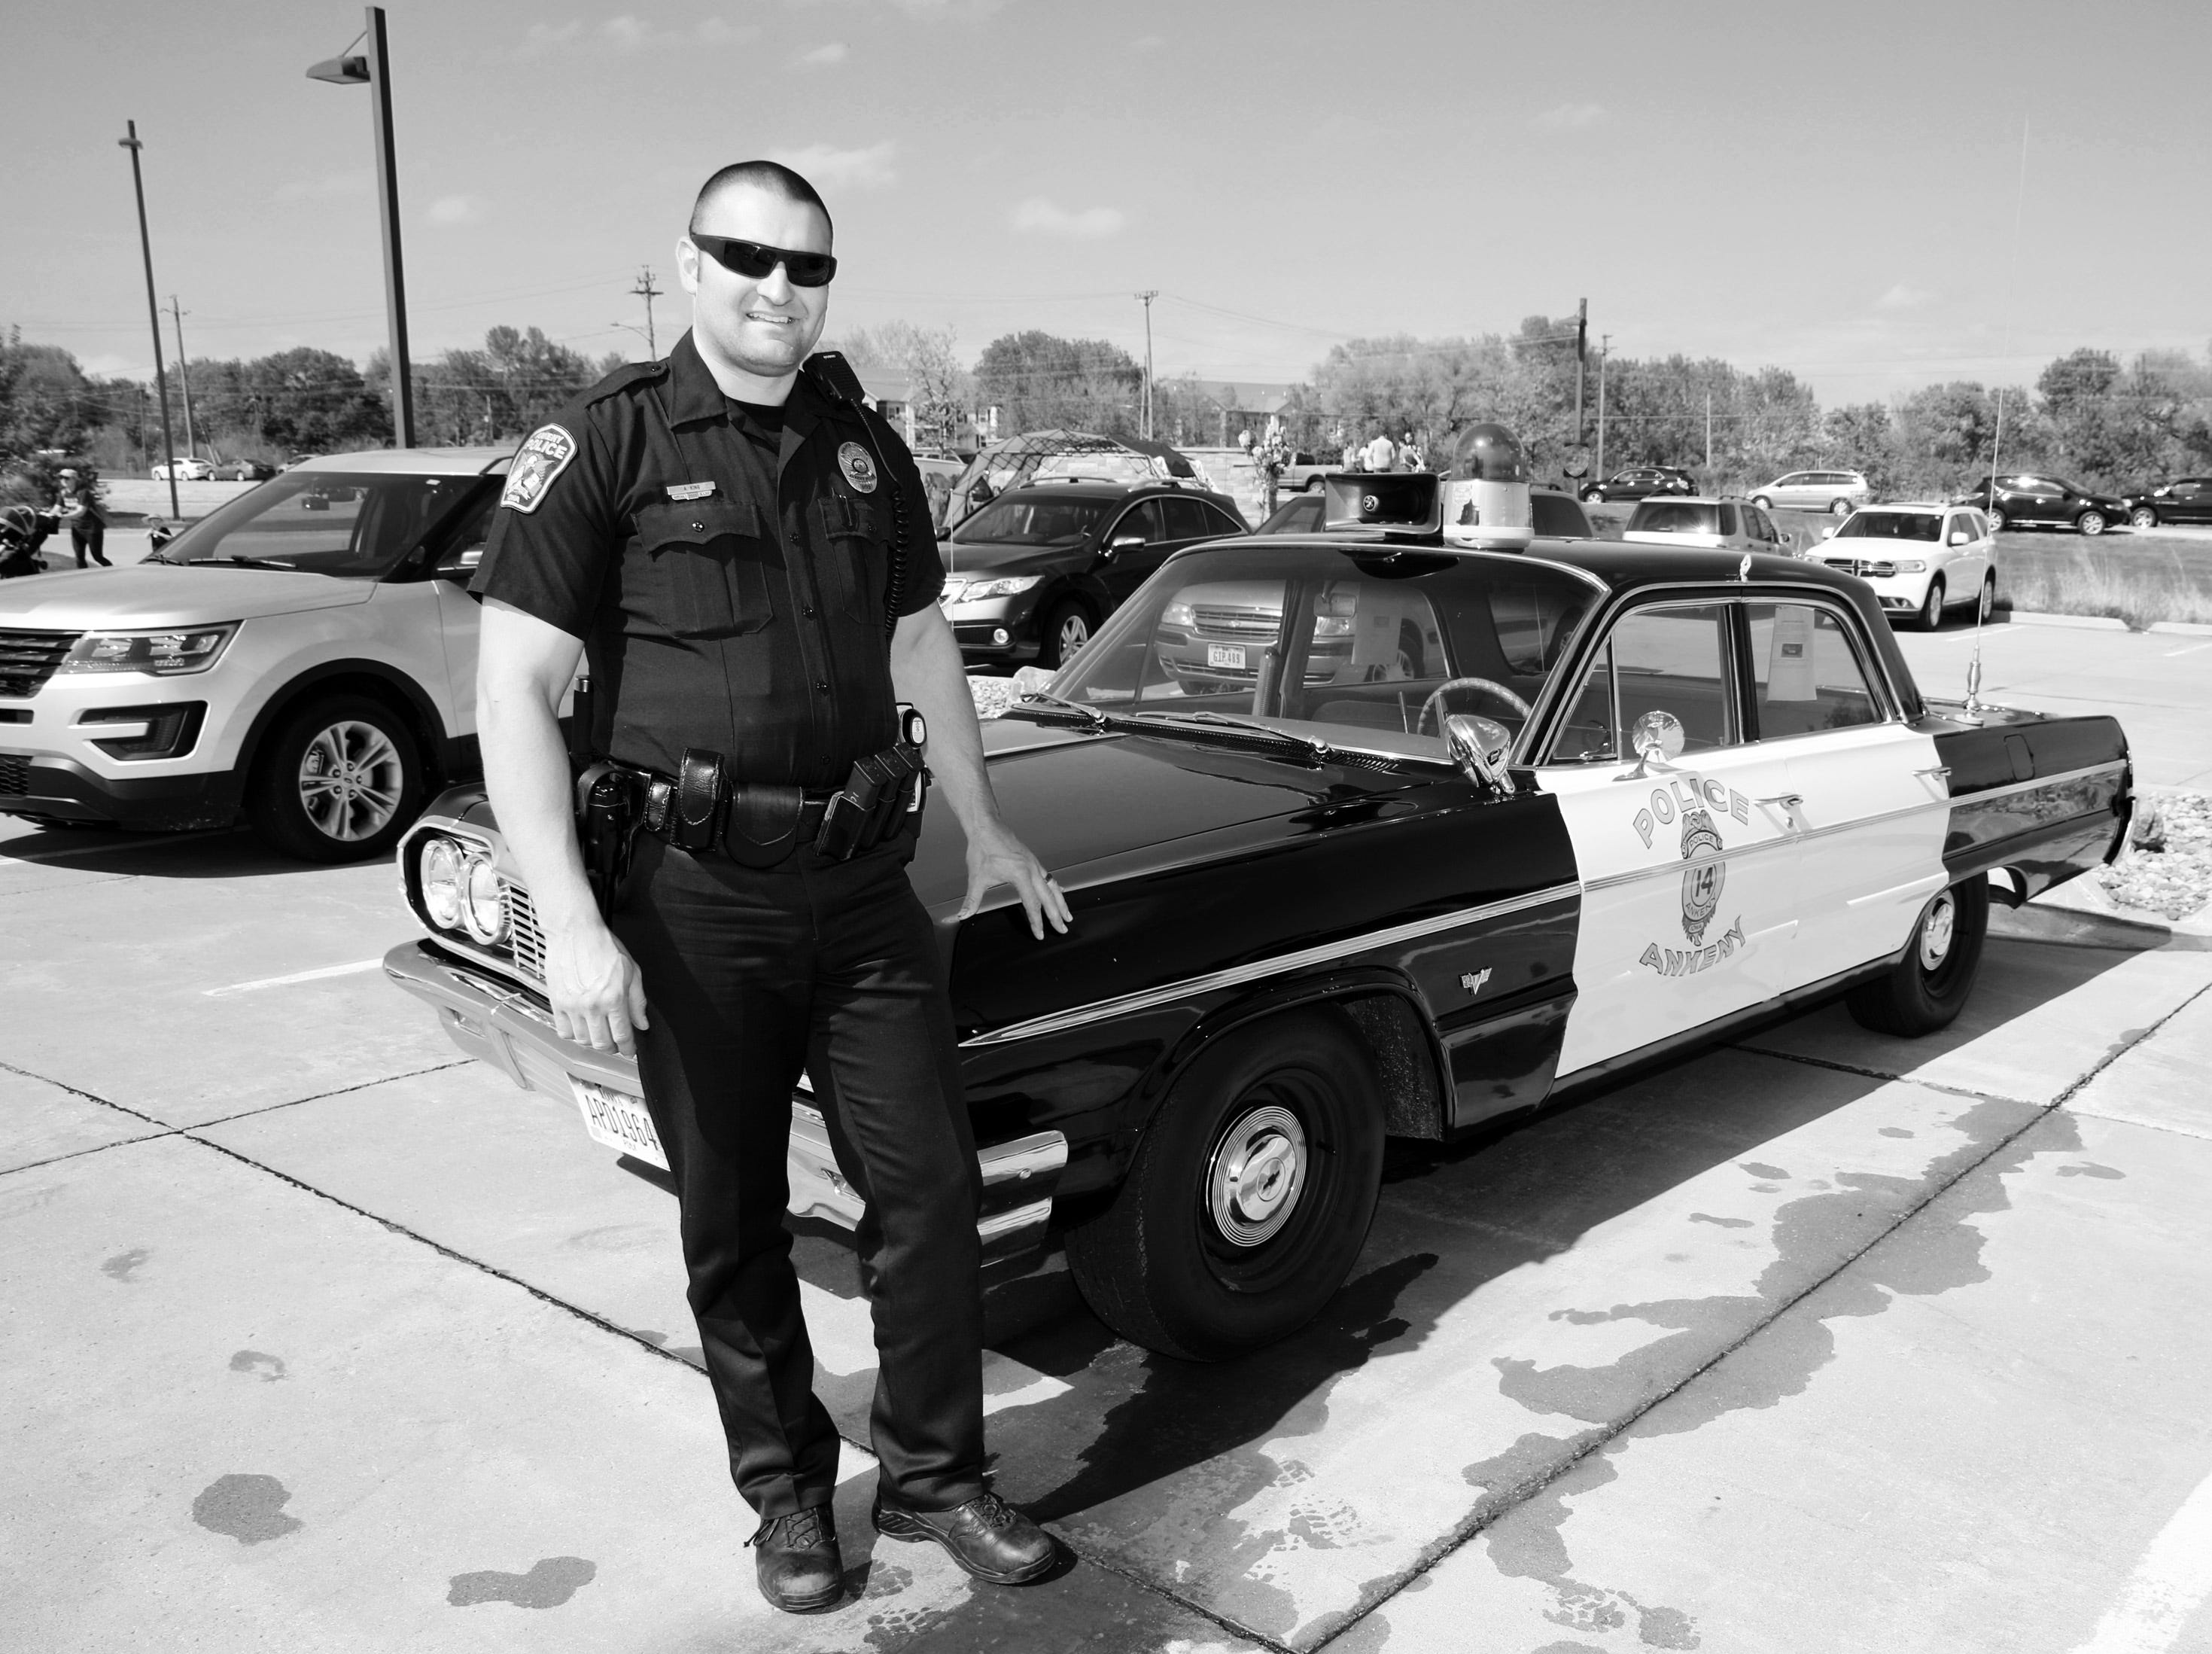 Officer Aaron King of the Ankeny Police Dept. stands by the classic 1964 police car during the Ankeny Police Week Community Picnic on Tuesday, May 14, 2019 at the Ankeny Police Headquarters located at 411 SW Ordnance Road. The event featured a tour of the police station, magician Jonathon May, free Chick Fil-A sandwiches for the first 1,000 guests, free Kona Ice, temporary tattoos, and a great opportunity to meet the officers who protect and serve the city of Ankeny.